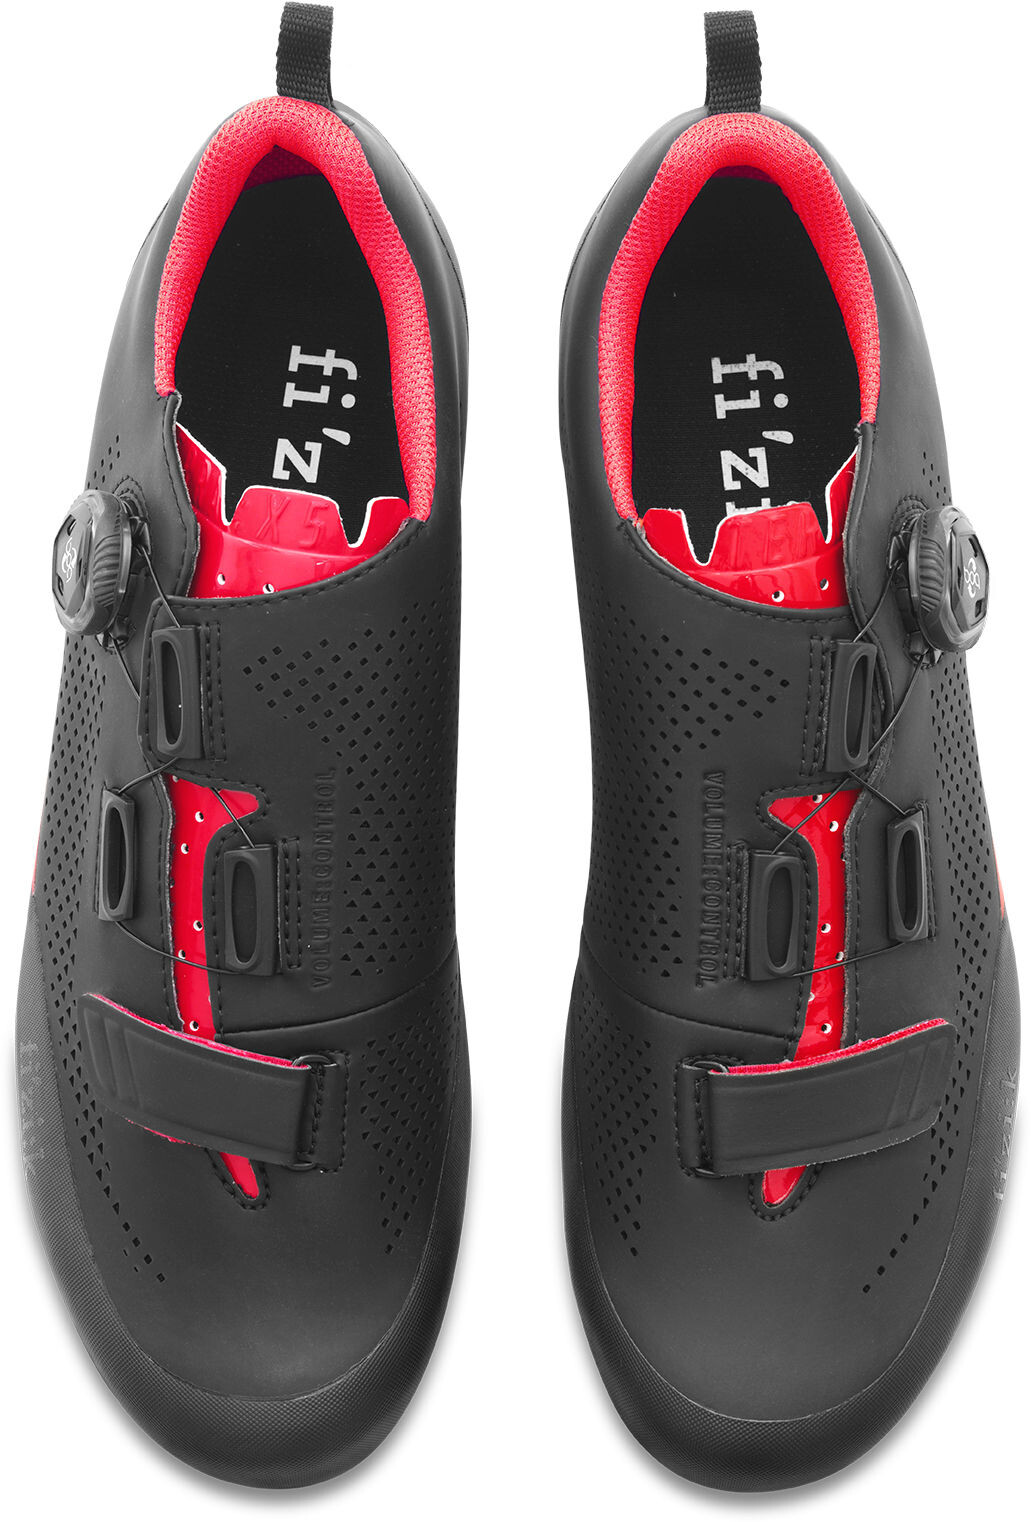 fizik terra x5 mtb schuhe herren schwarz rot online kaufen. Black Bedroom Furniture Sets. Home Design Ideas